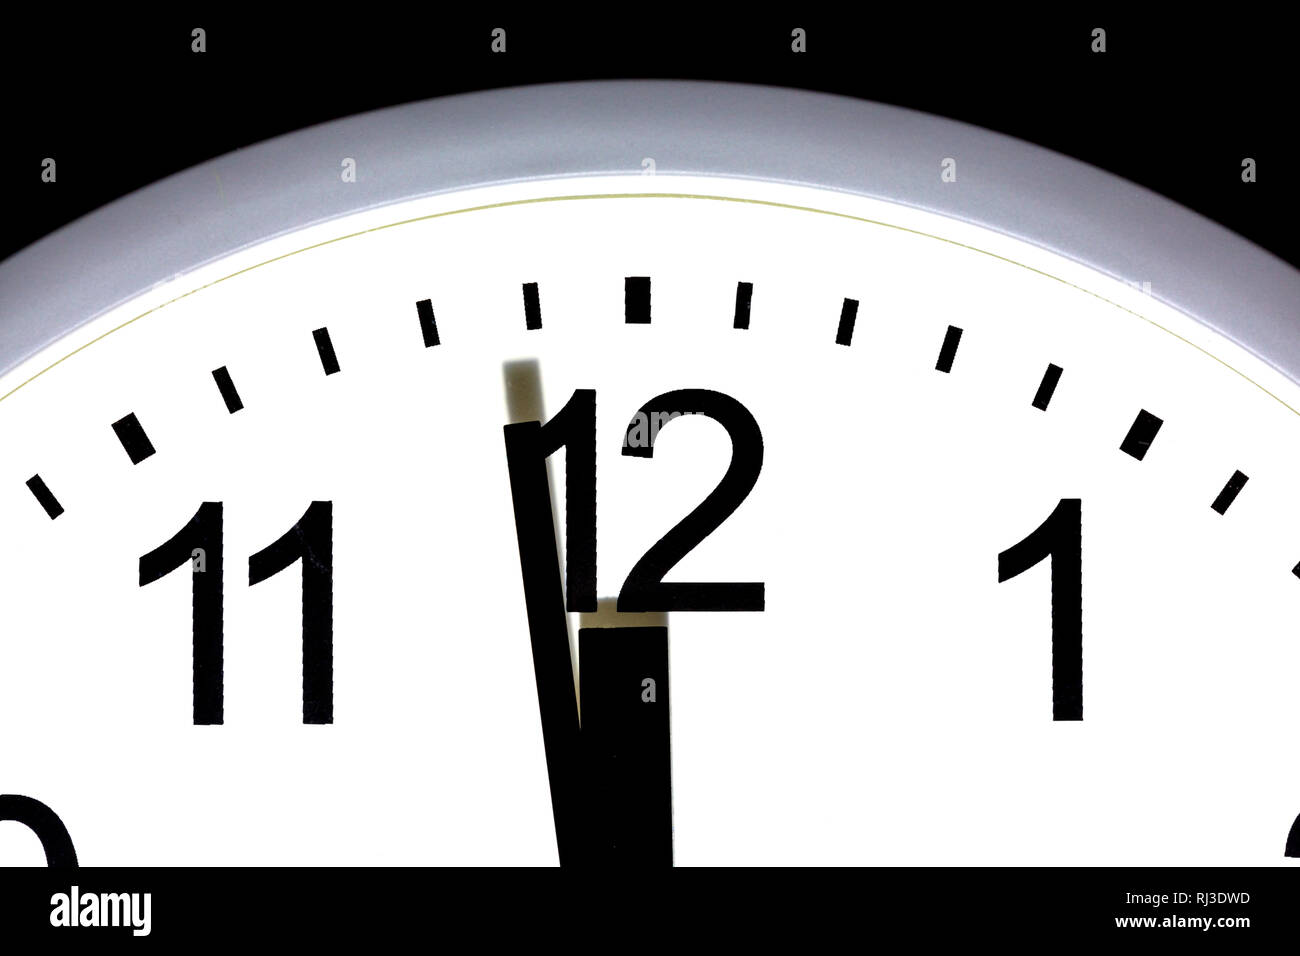 Close up of a clock showing one minute to 12, midnight. - Stock Image